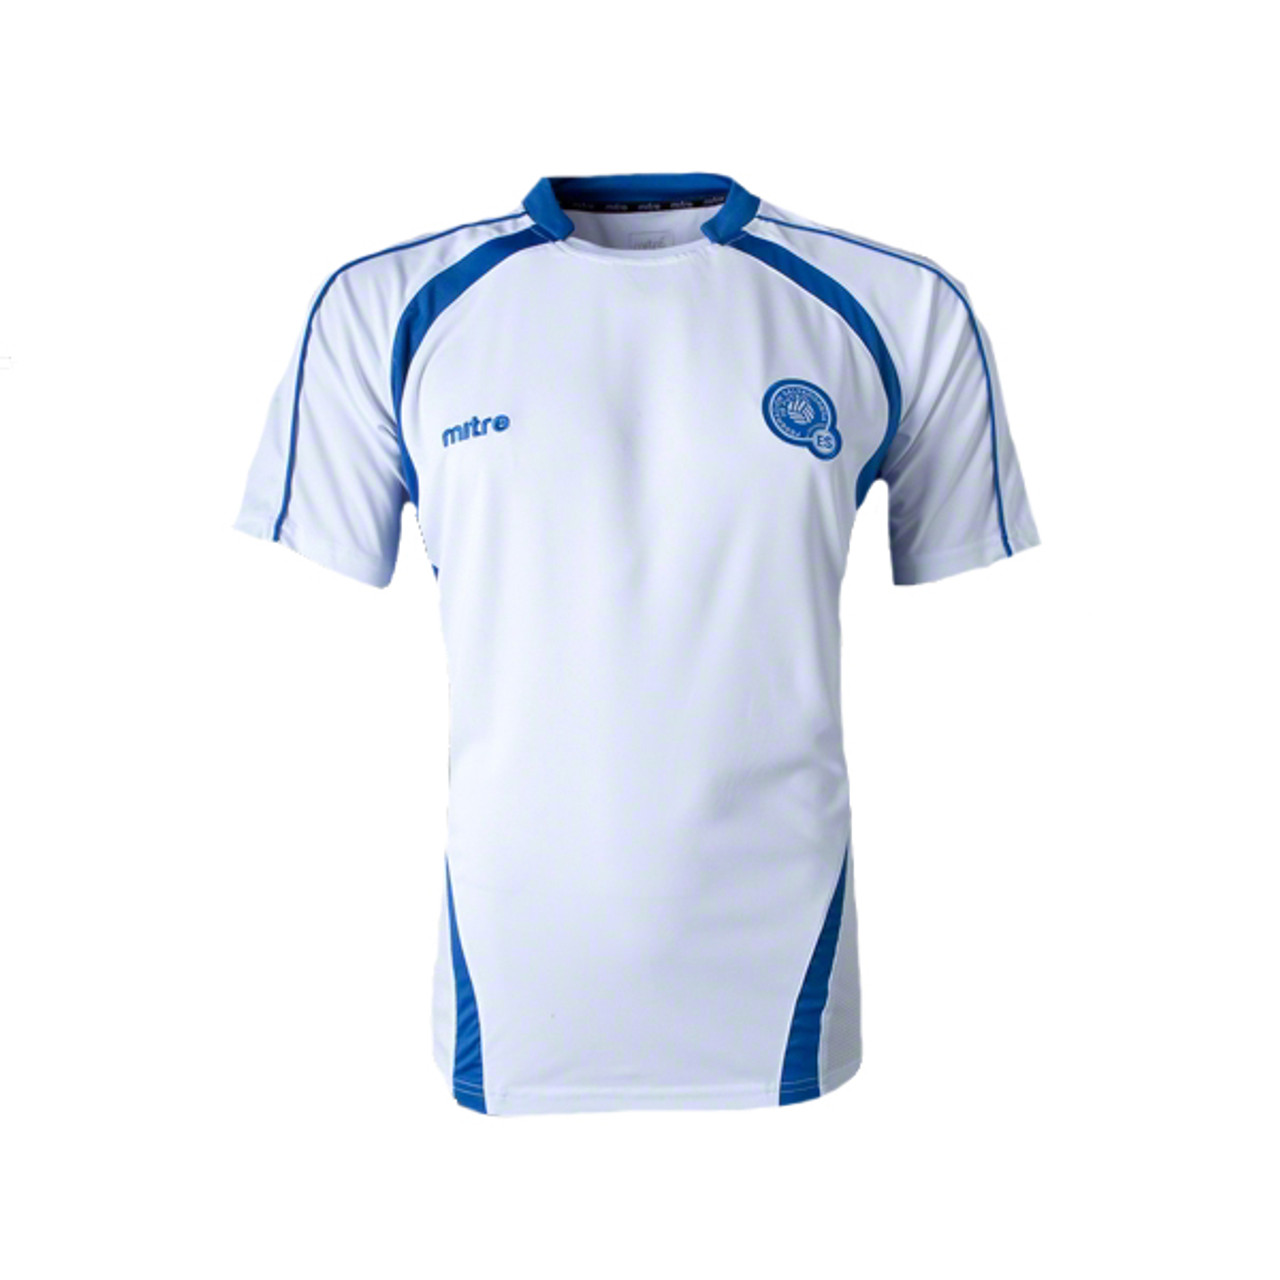 90e0145b9 MITRE EL SALVADOR 2014 AWAY JERSEY WHITE - Soccer Plus